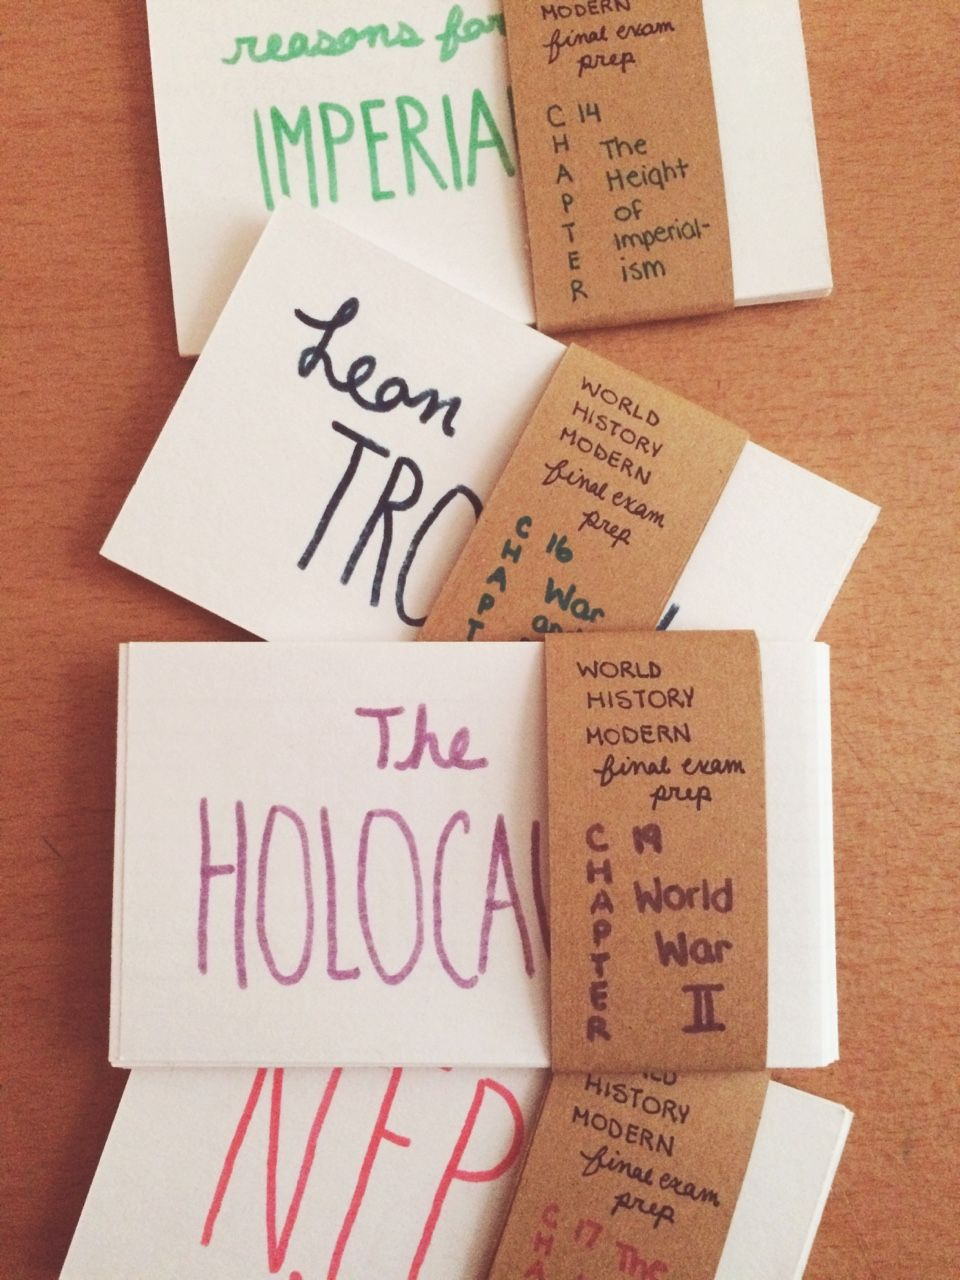 Cluster Group Note Cards By Topic Class Test To Make Studying Easier And Prevent Wasted Time